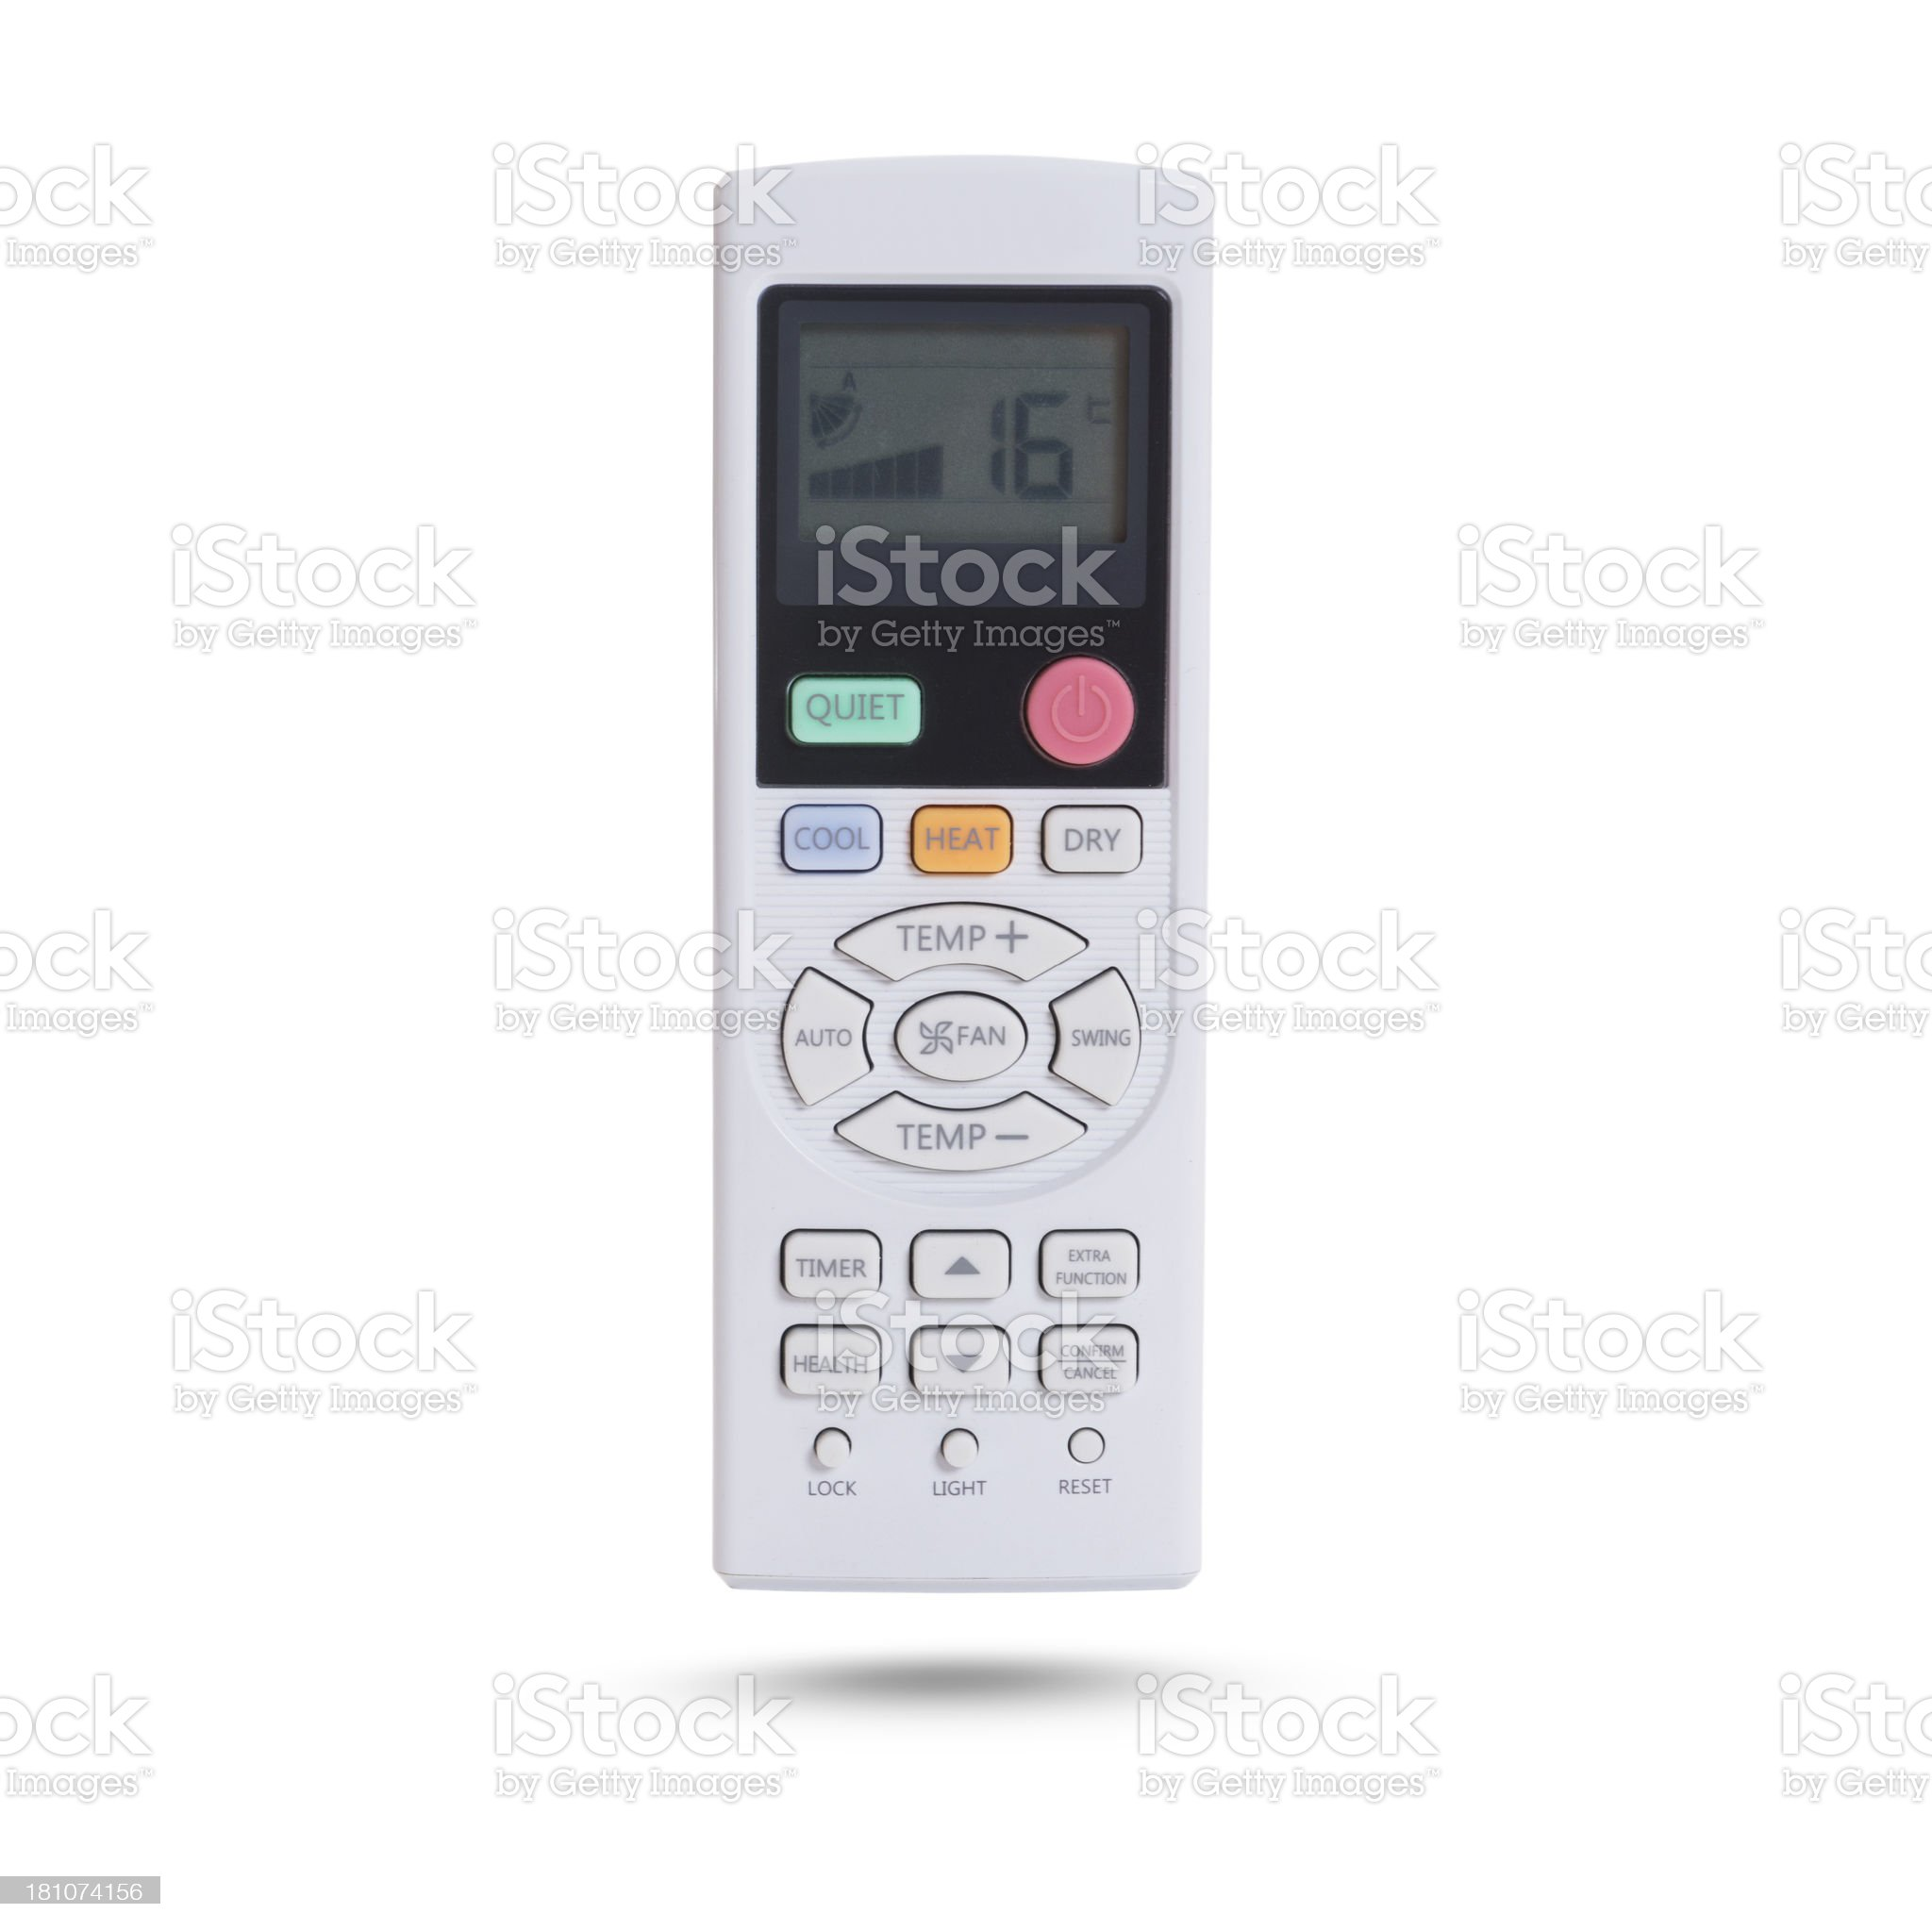 air conditionater remote control royalty-free stock photo